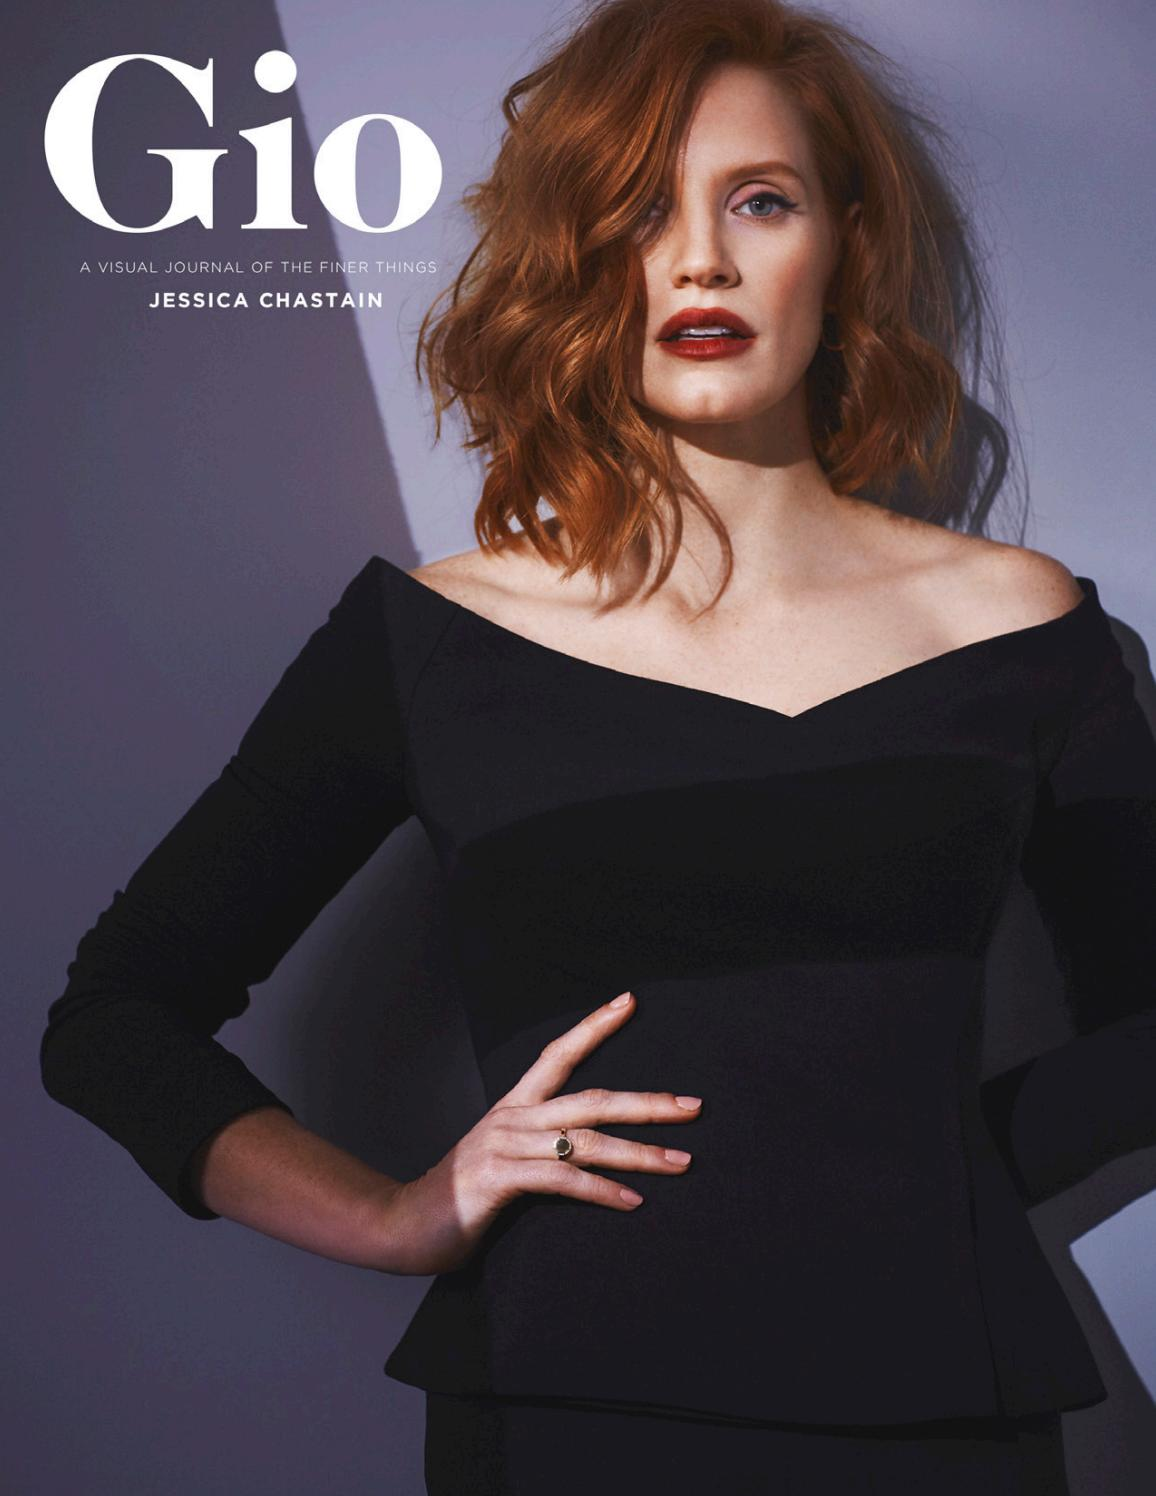 Gio Journal Issue 5 Jessica Chastain by giojournal issuu